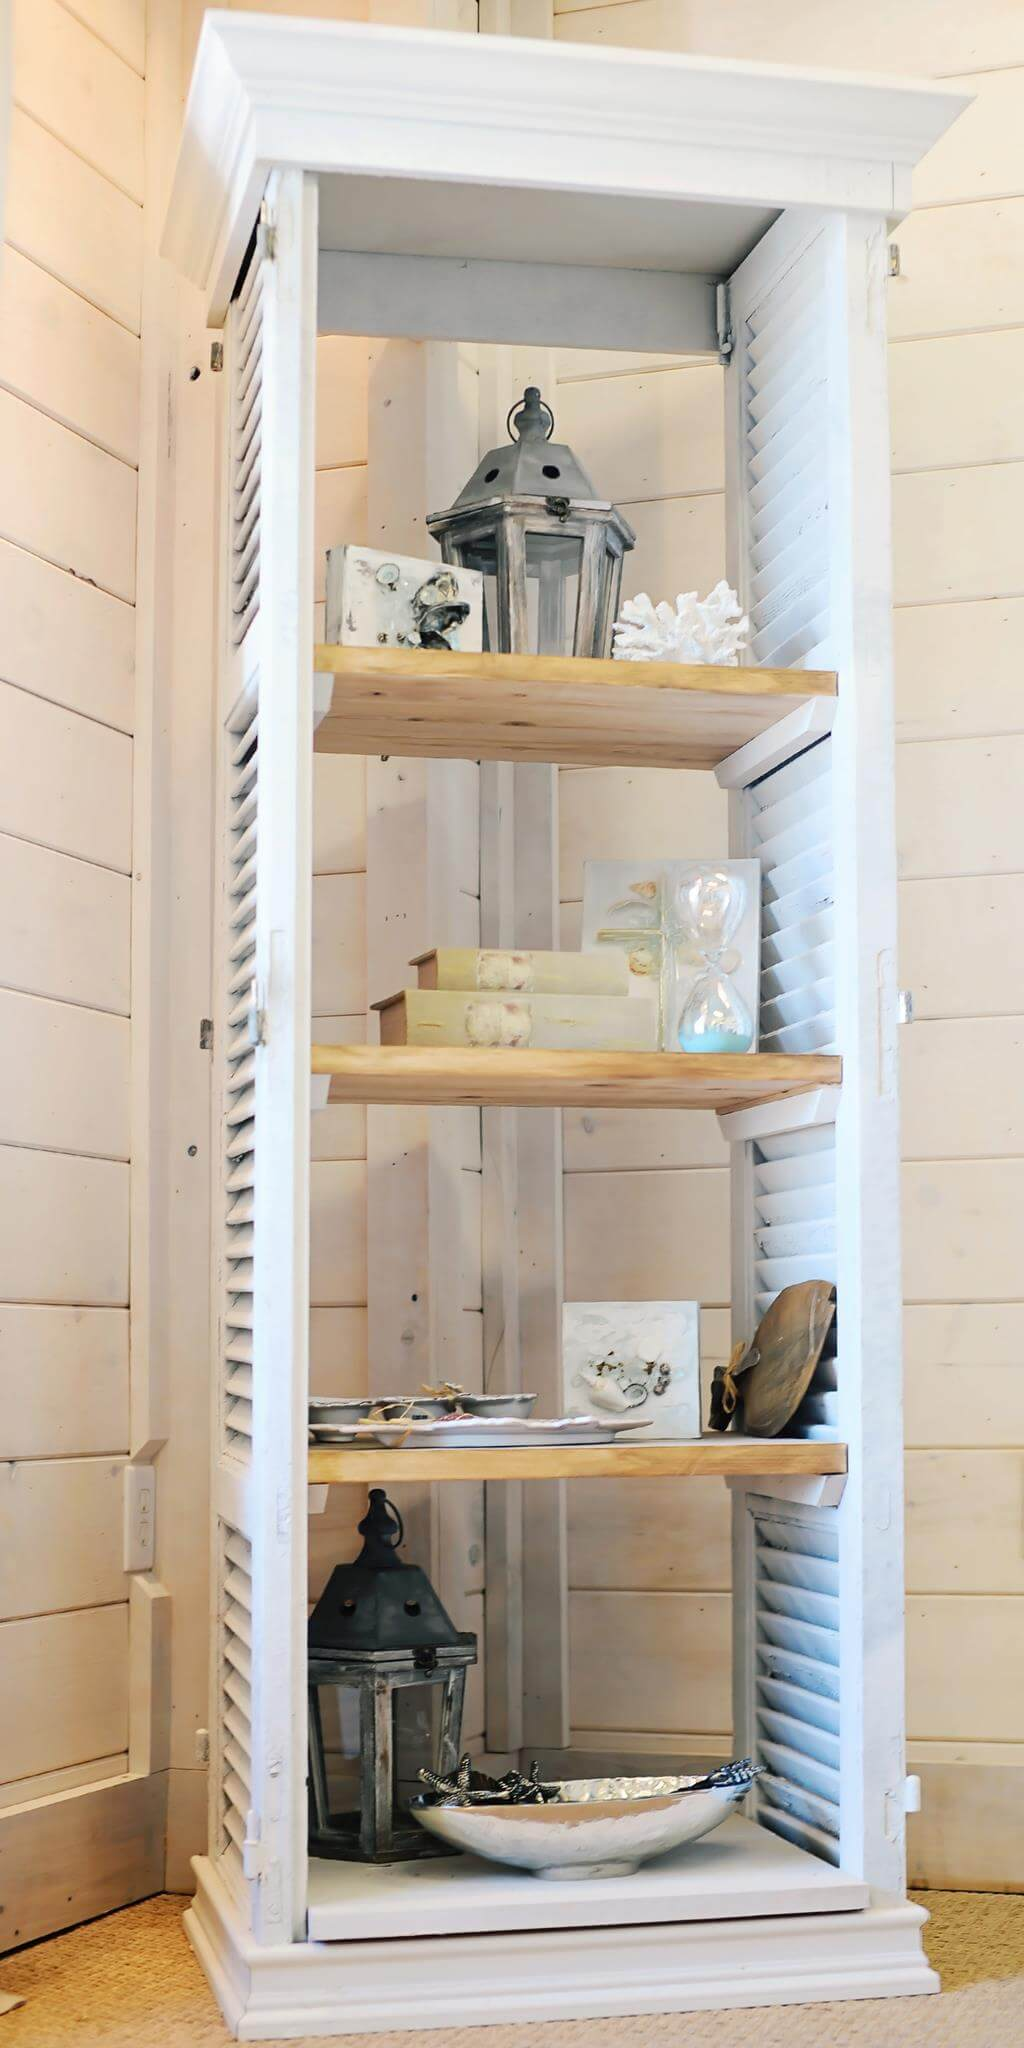 Diy shutter shelving unit